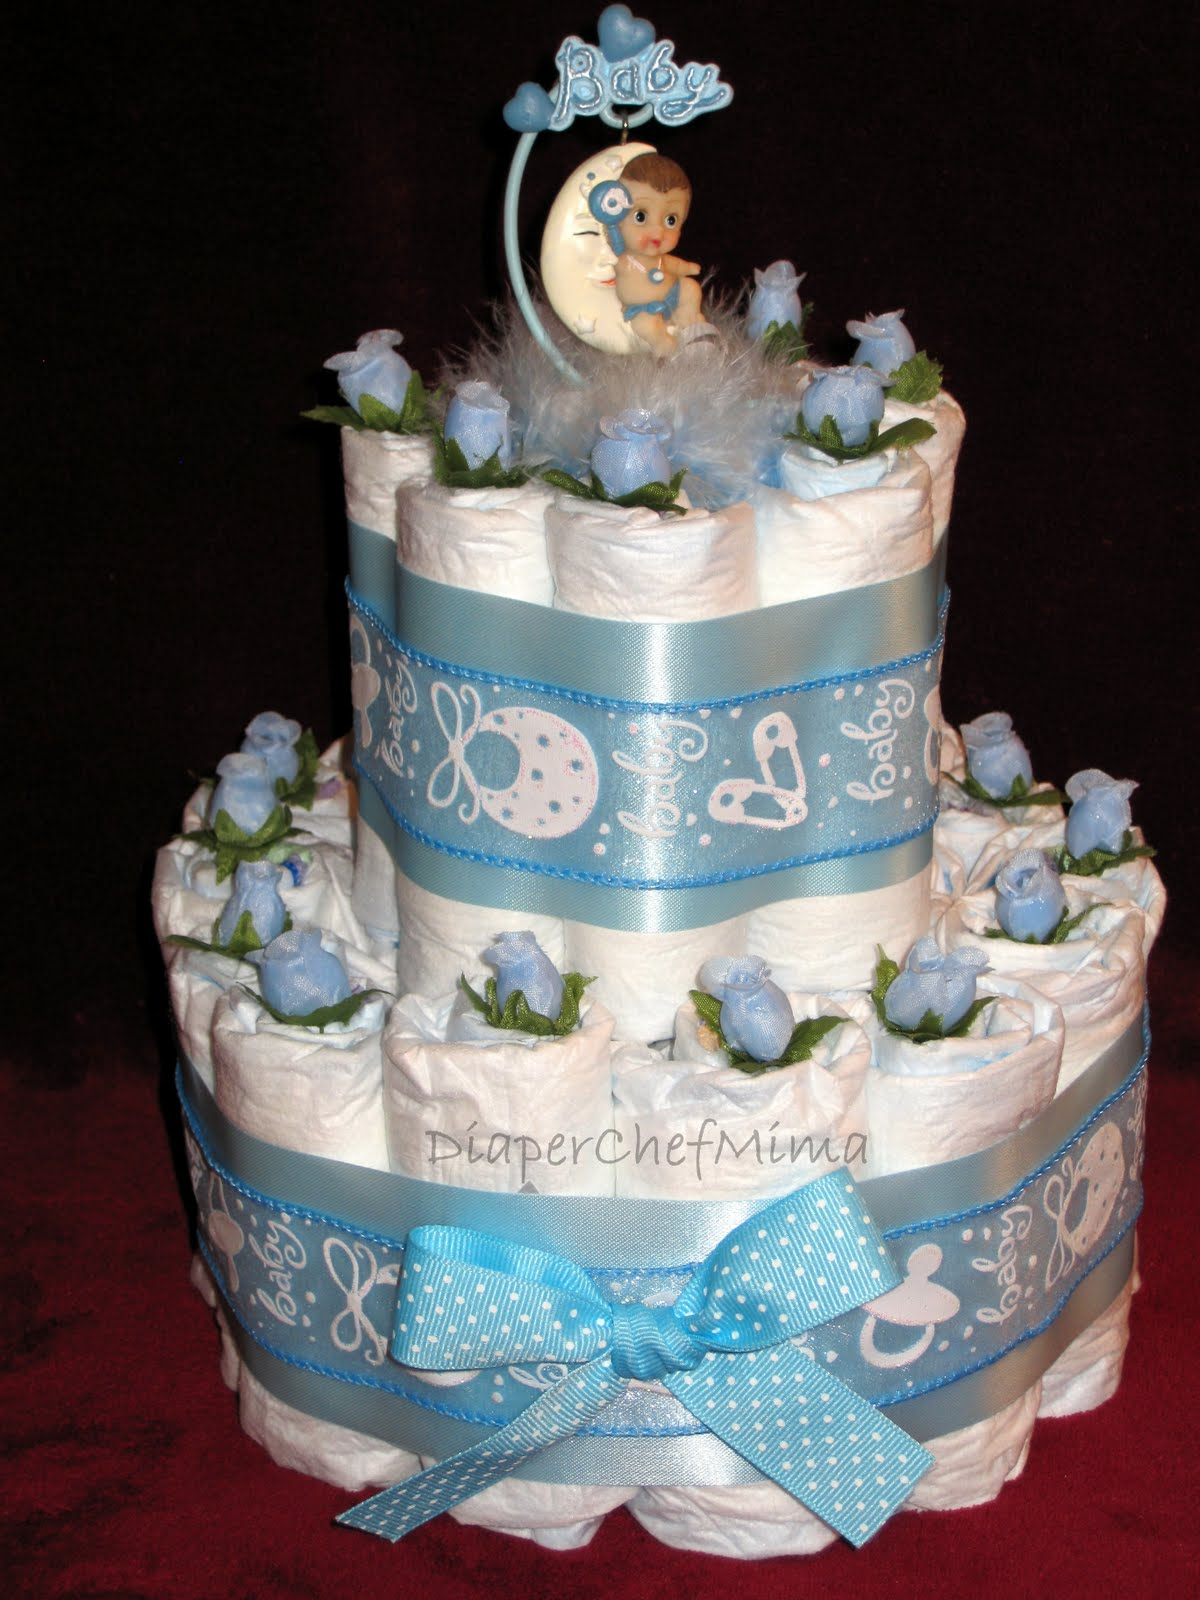 Diaper Cake Centerpiece For Baby Shower : Diaper Chef Mima: Baby Shower Diaper Cake Centerpieces